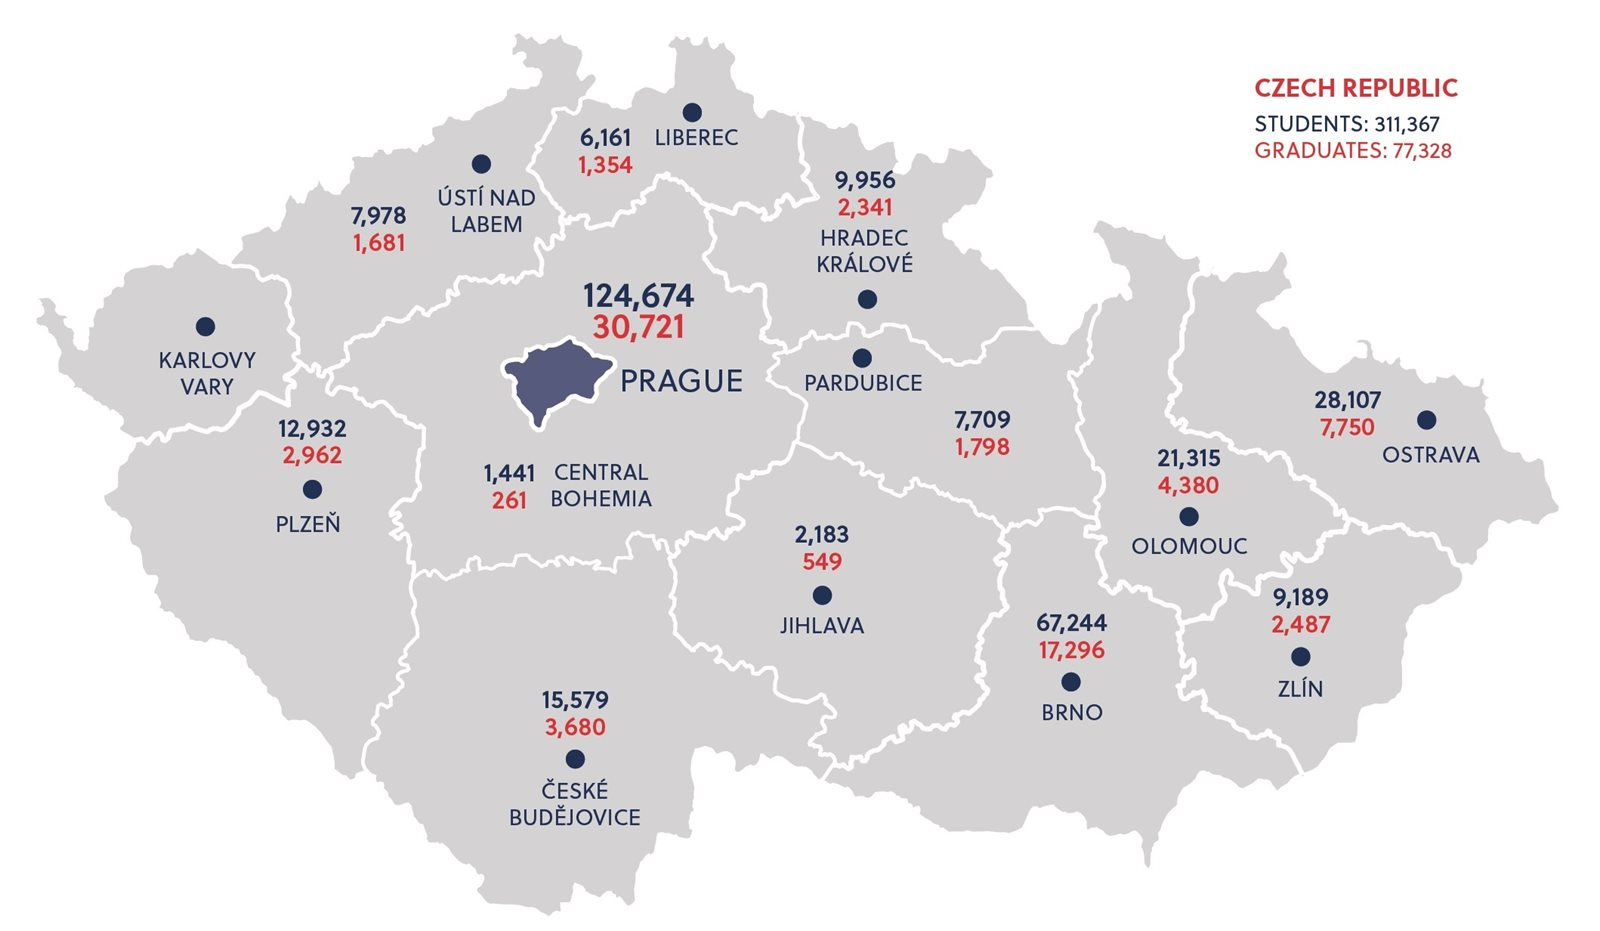 NUMBER OF STUDENTS AND GRADUATES AT UNIVERSITIES IN THE REGIONS OF THE CZECH REPUBLIC. Academic year 2016/2017